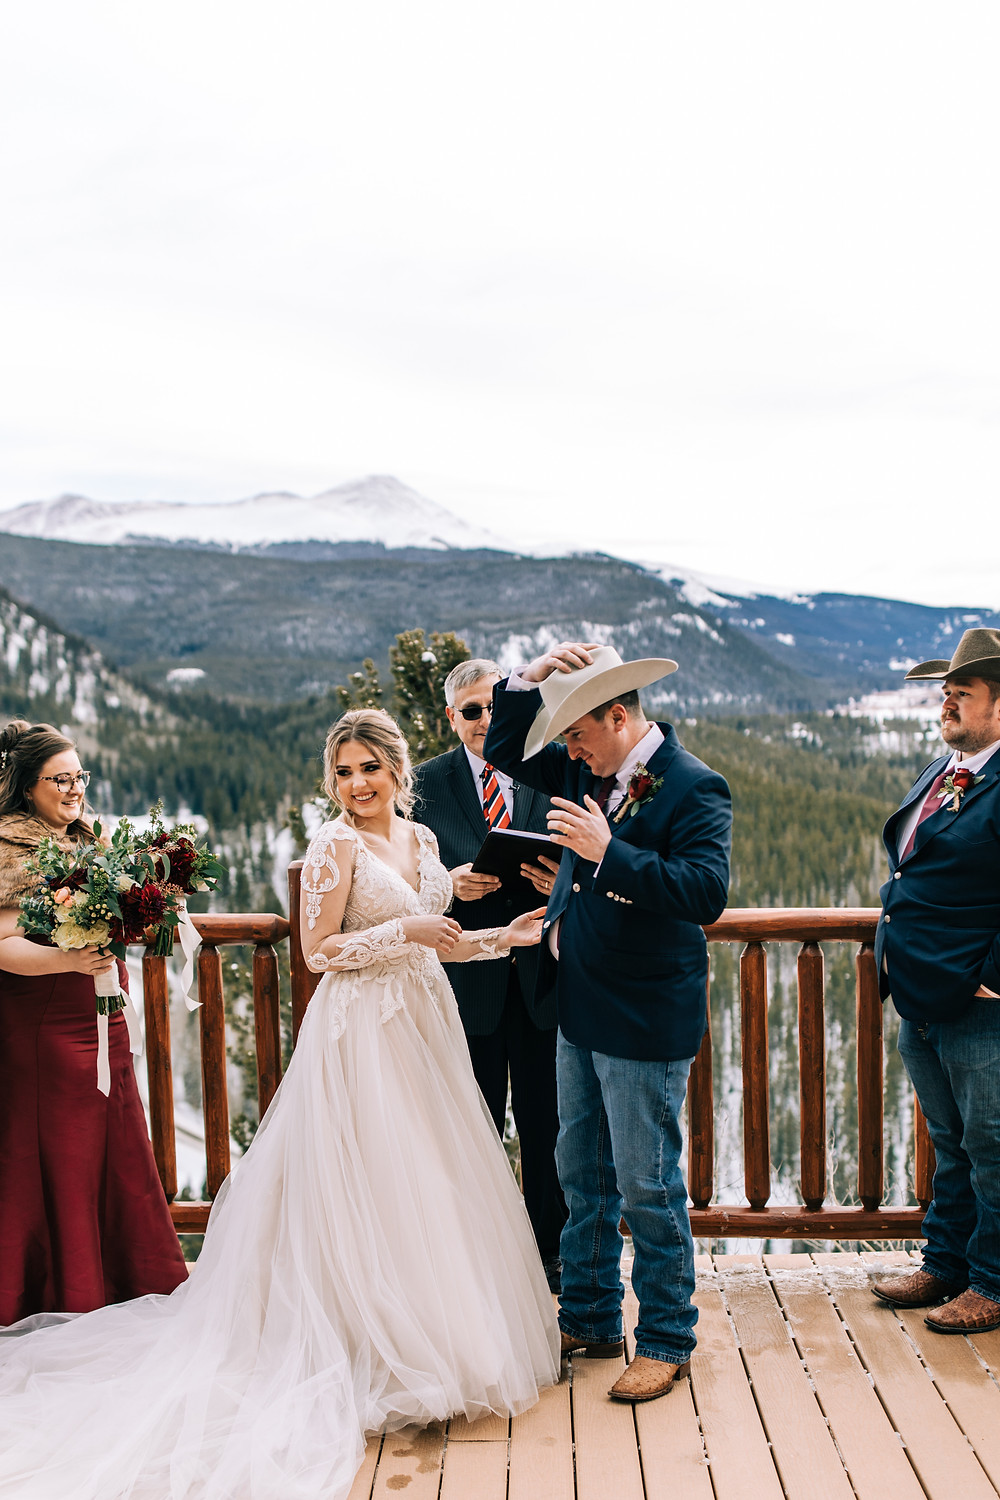 The Lodge at Breckenridge Wedding - Bride and Groon